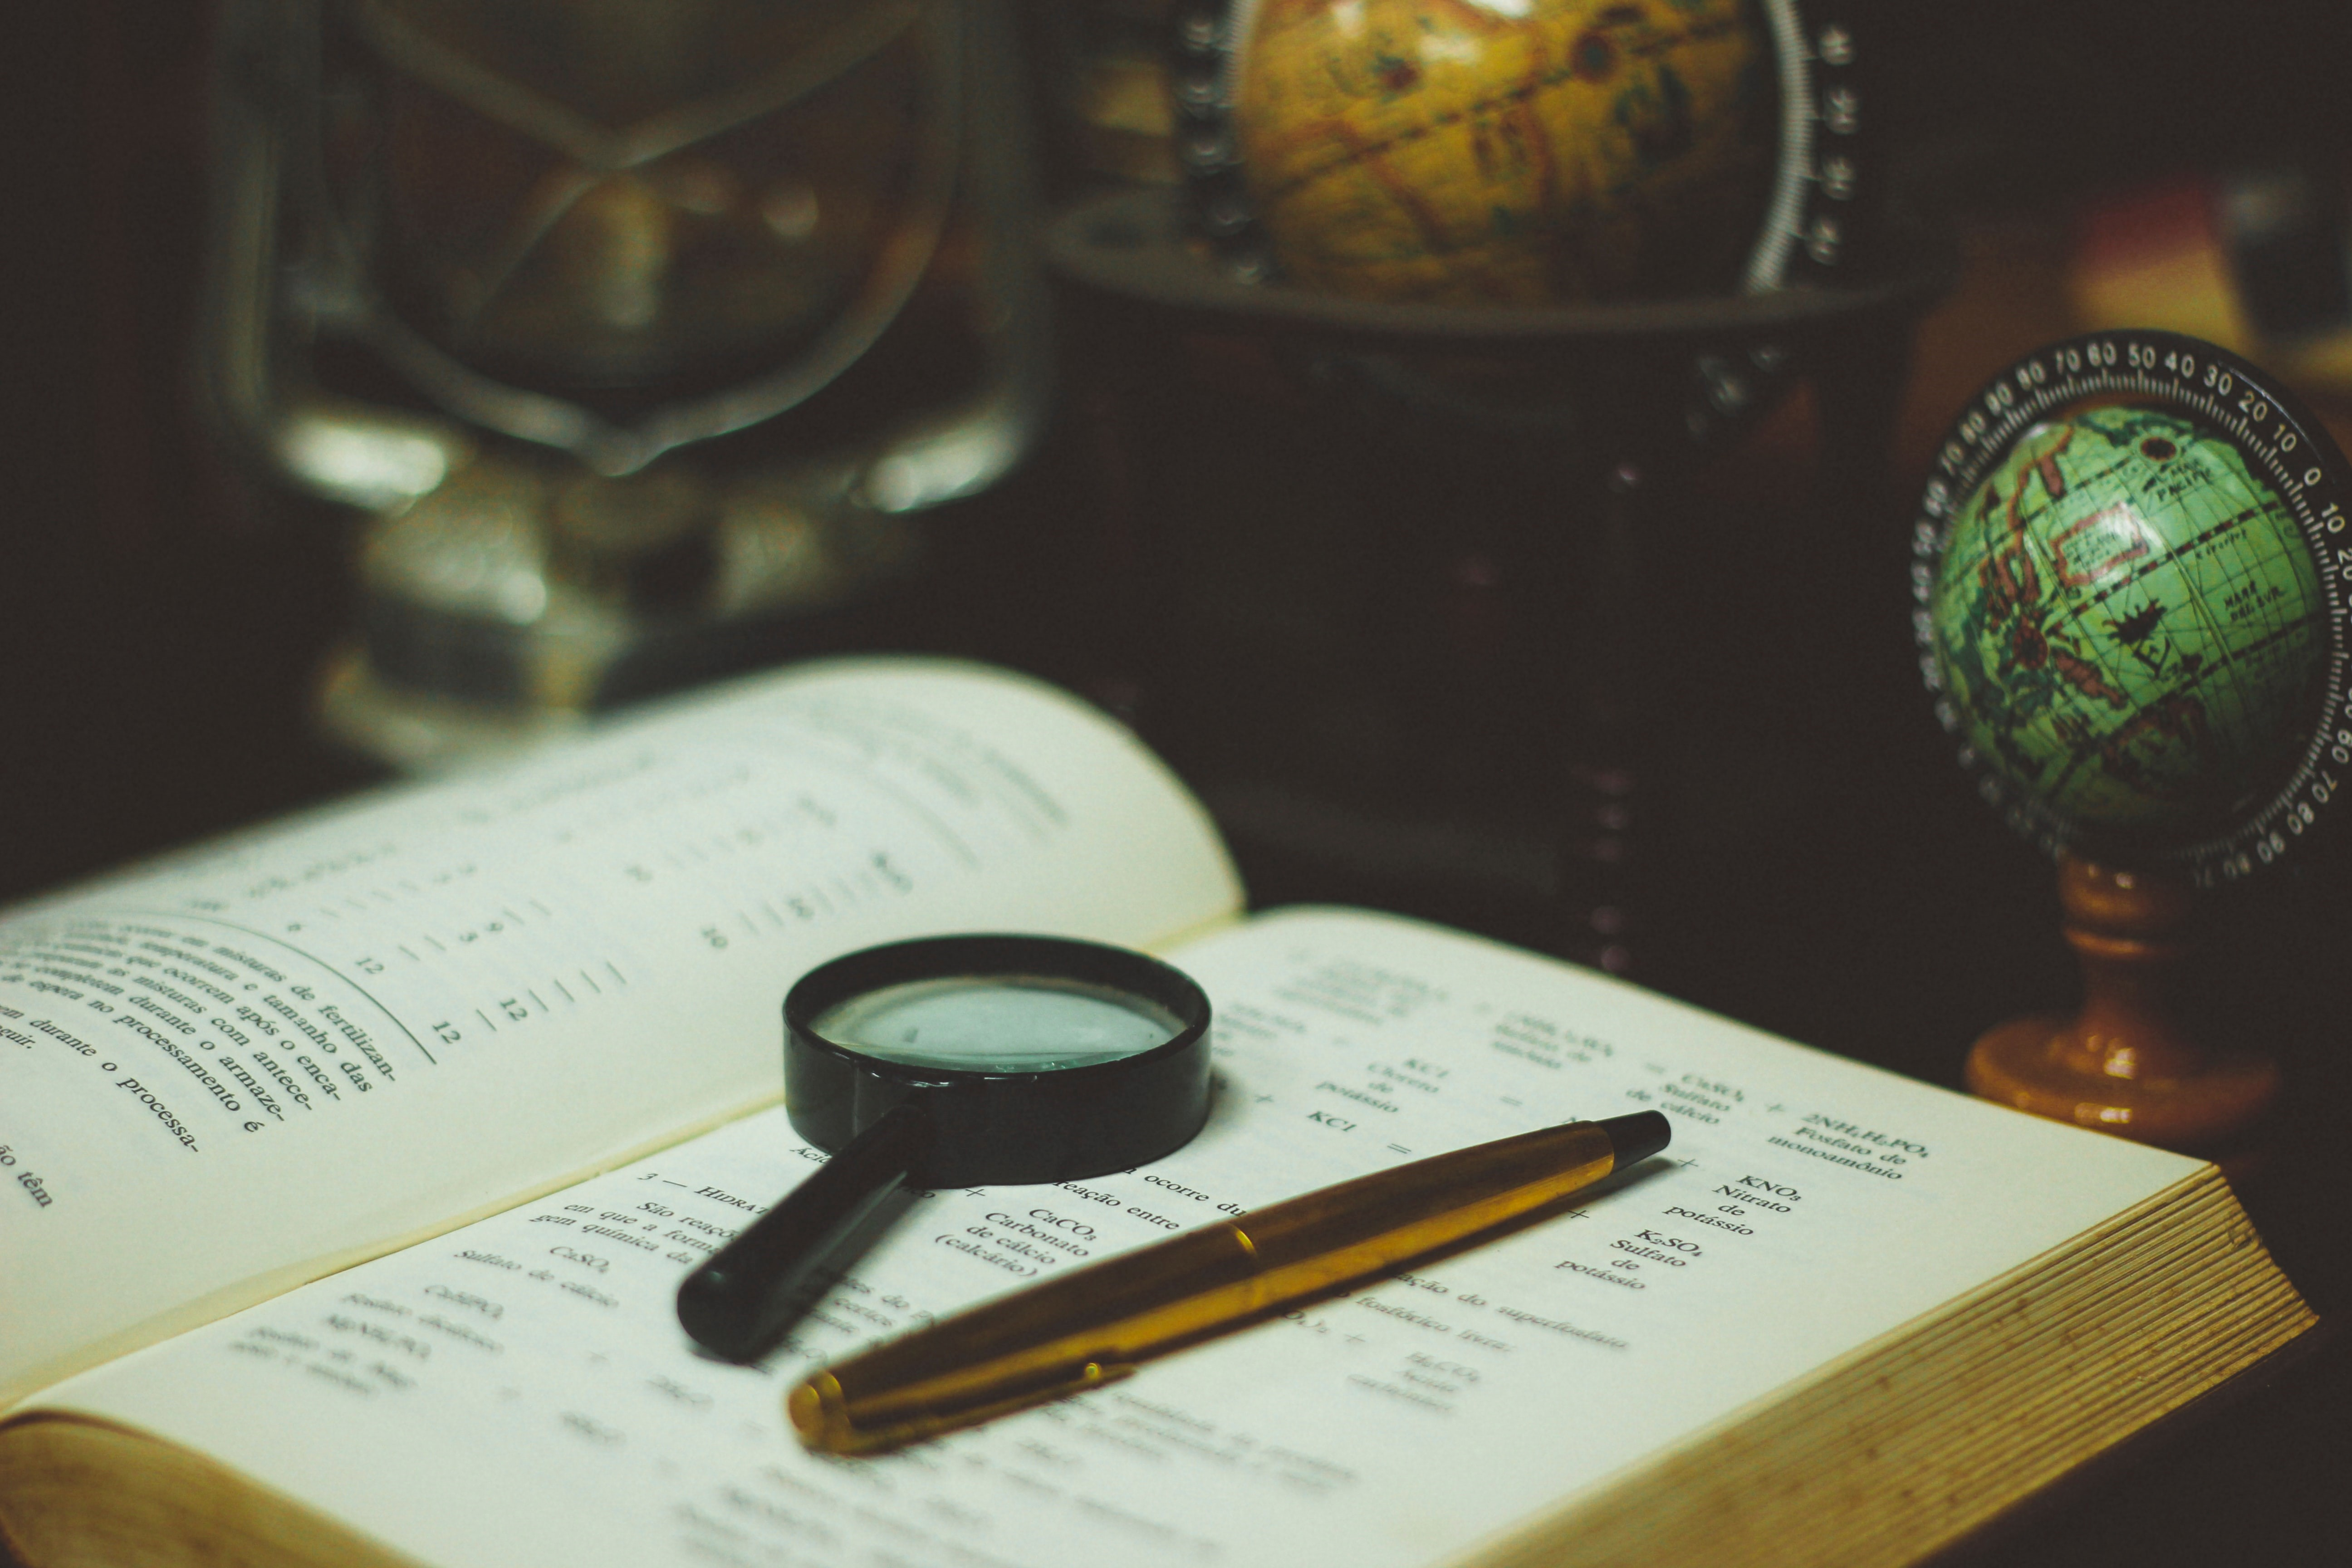 Open book with magnifying glass and pen